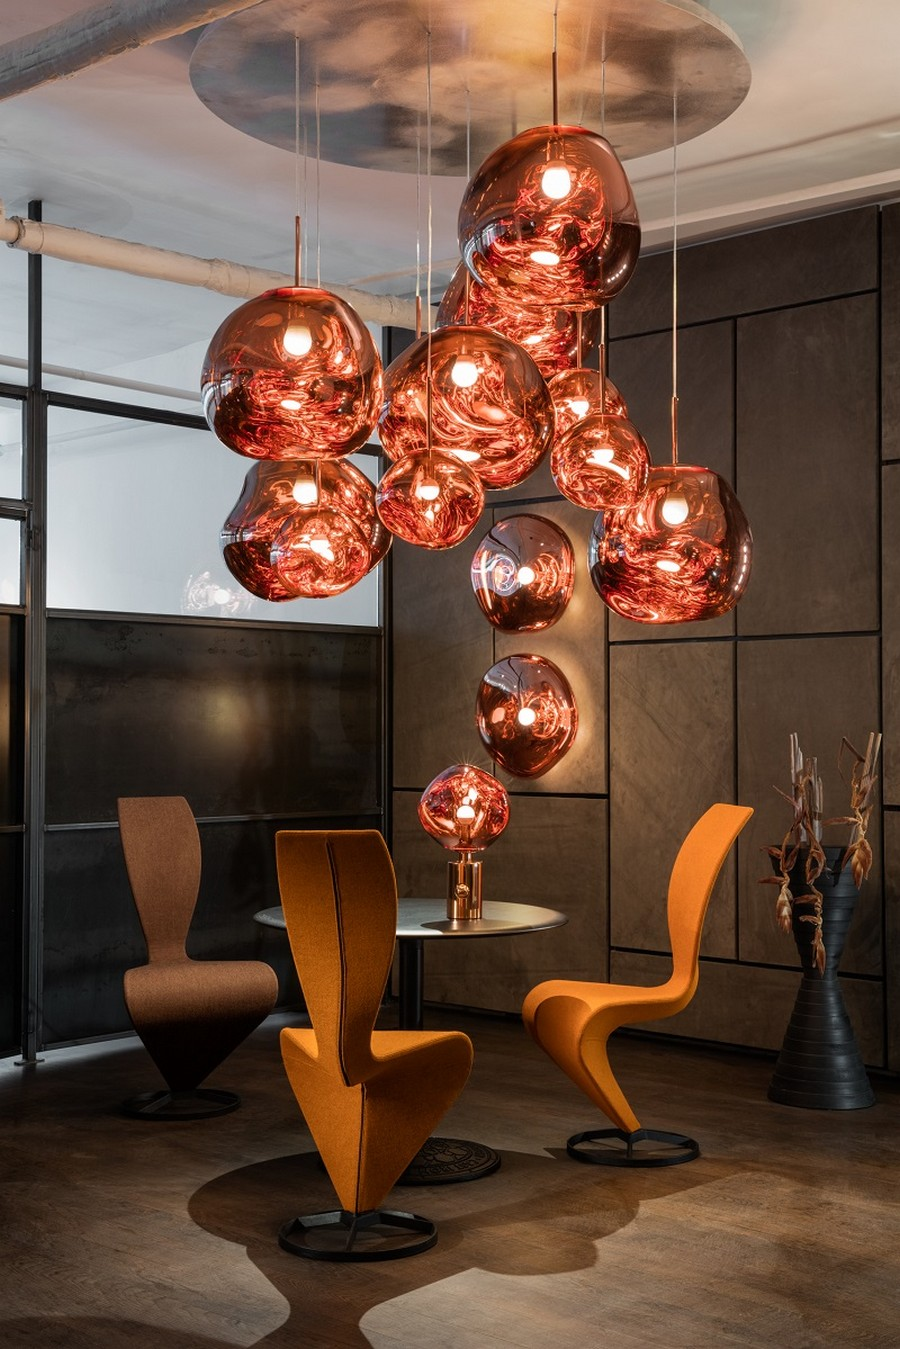 italian furniture design DIVE INTO THE WORLD OF HIGH-END ITALIAN FURNITURE DESIGN Tom Dixon Announces New Space In NYC And Two New Product Collections 2